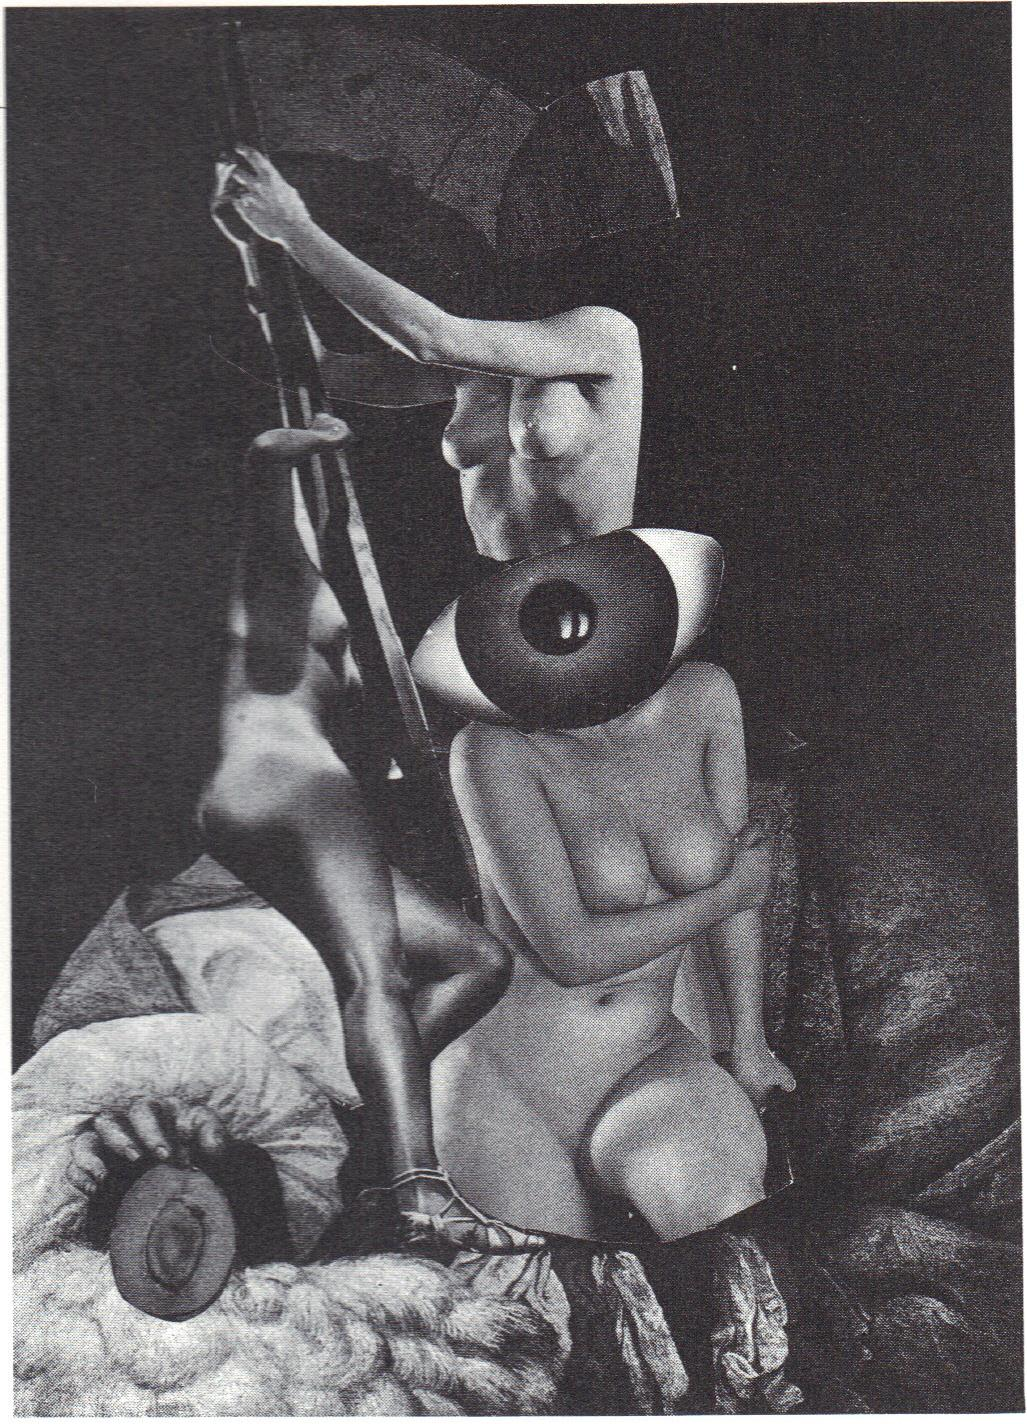 Surreal Erotica by Czech artist, Karel Teige: tumblr_mfzfamIW3t1r1w31so1_1280.jpg